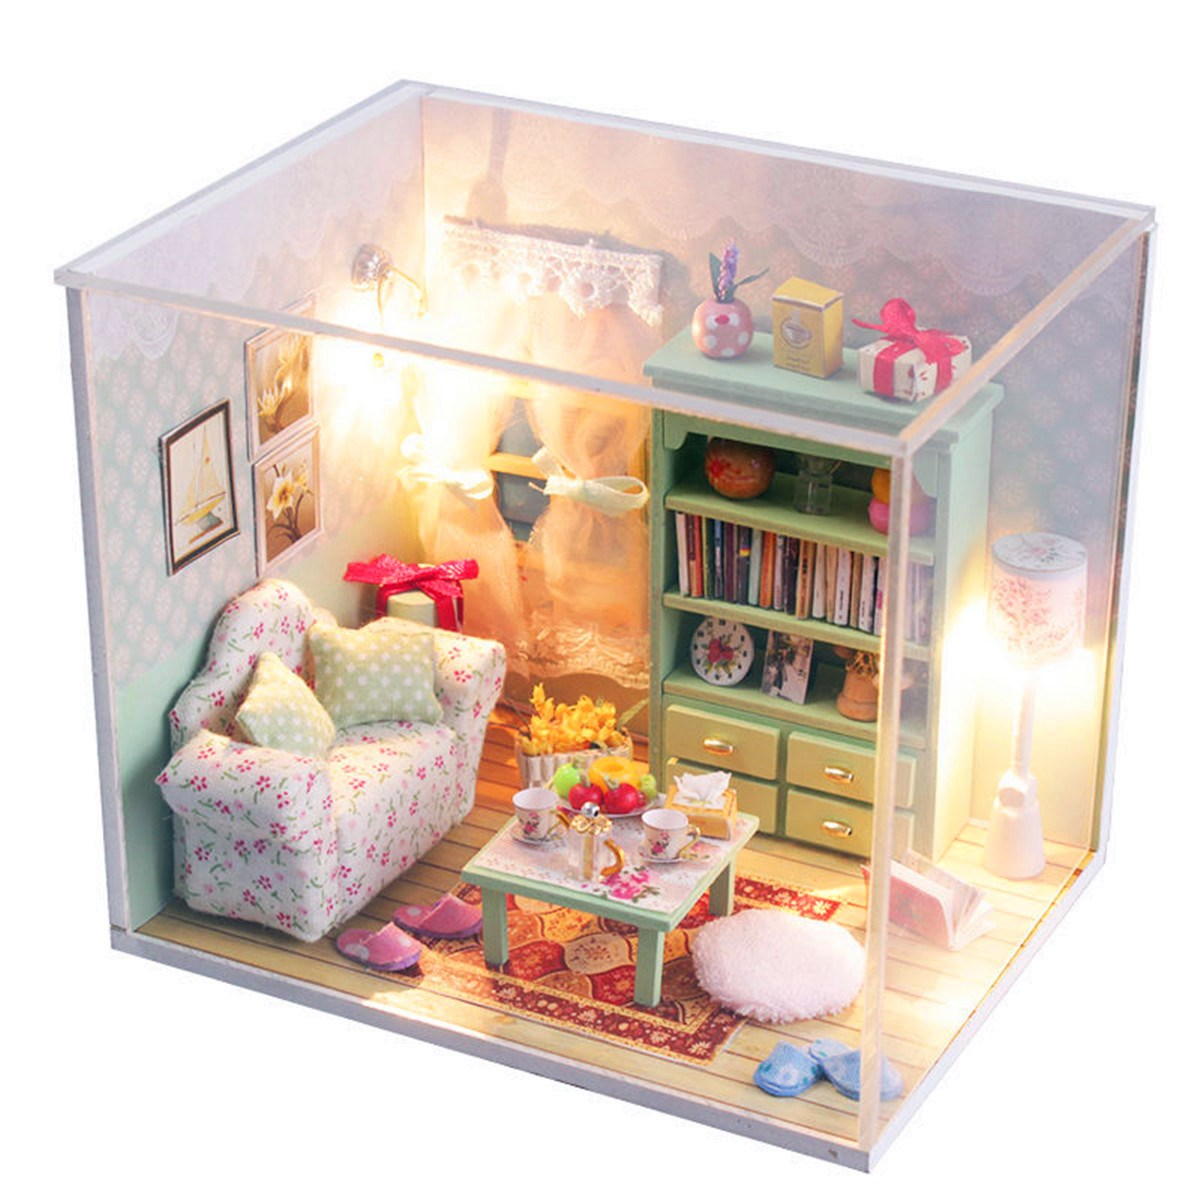 Hoomeda diy mini dream house wood dollhouse miniature with for Dream house days furniture